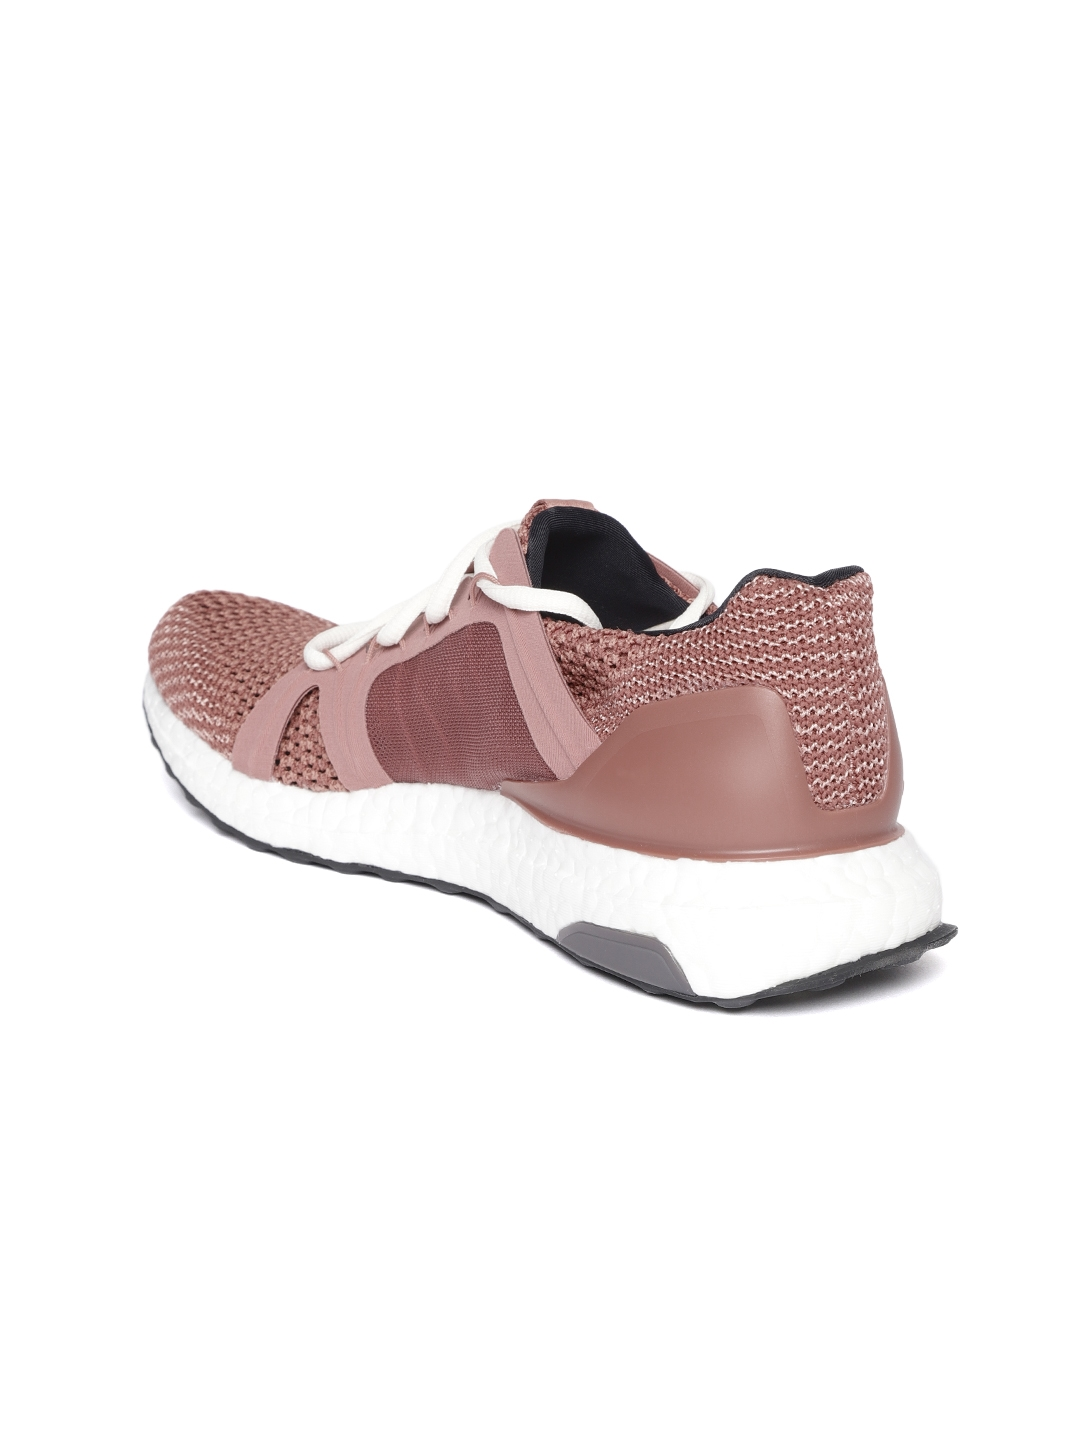 5ac2dc7f42de6 Buy Stella McCartney By ADIDAS Women Dusty Pink Ultraboost Running ...